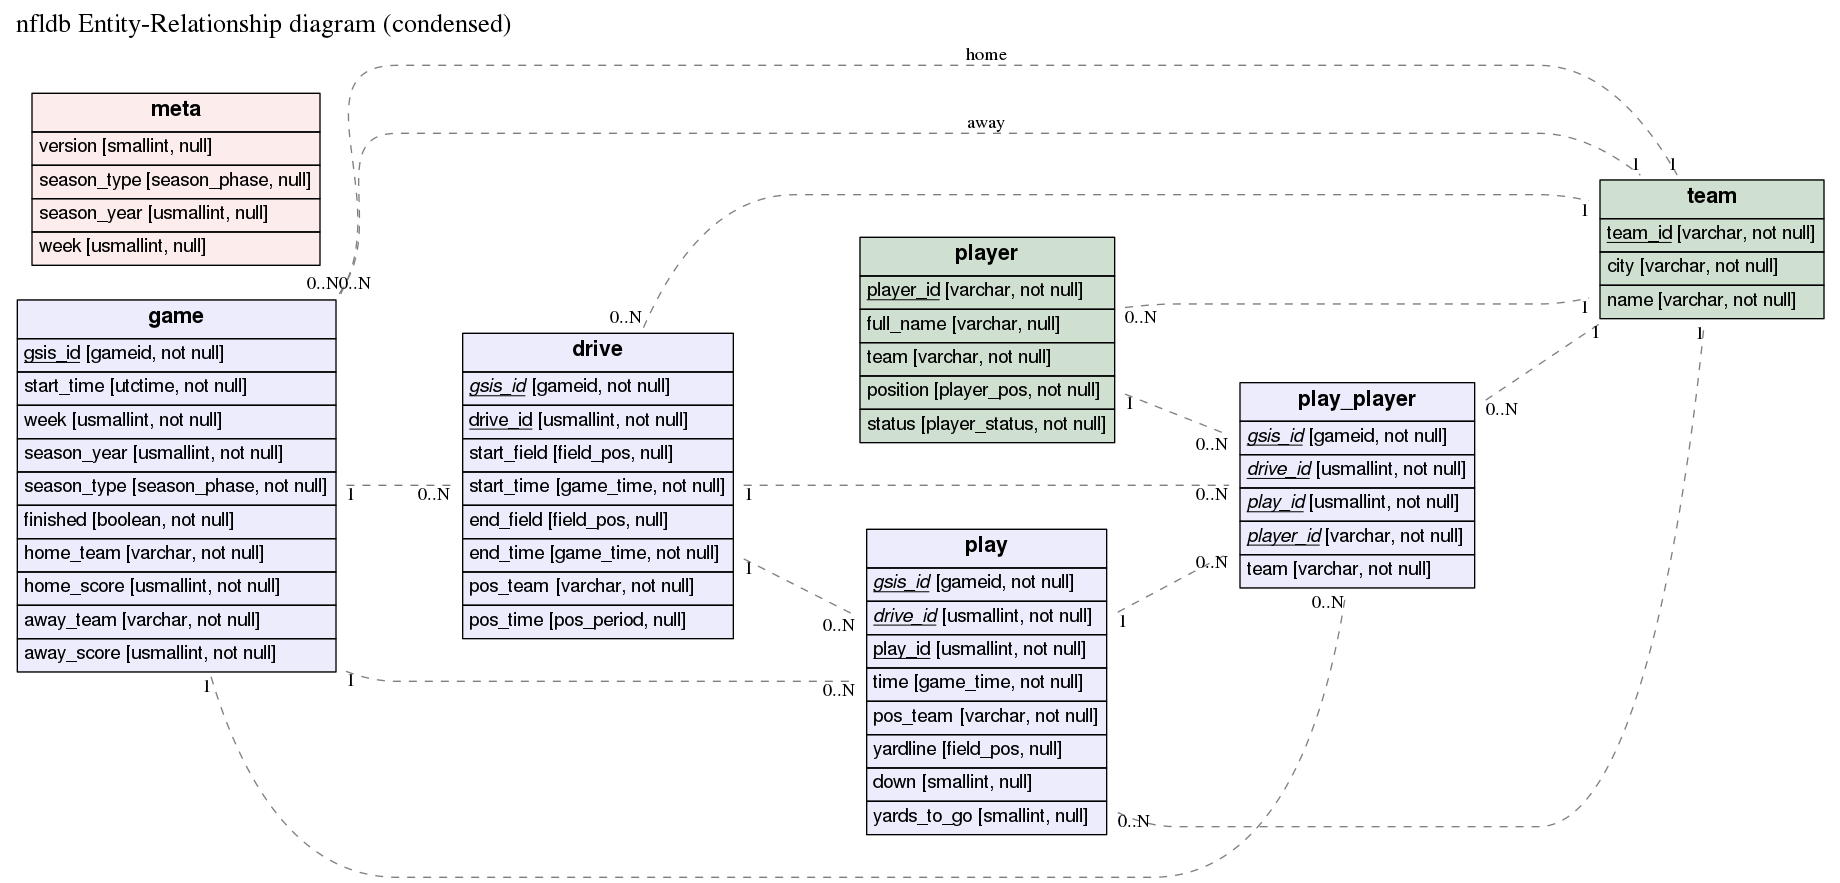 Github burntsushierd translates a plain text description of a er diagram for nfldb ccuart